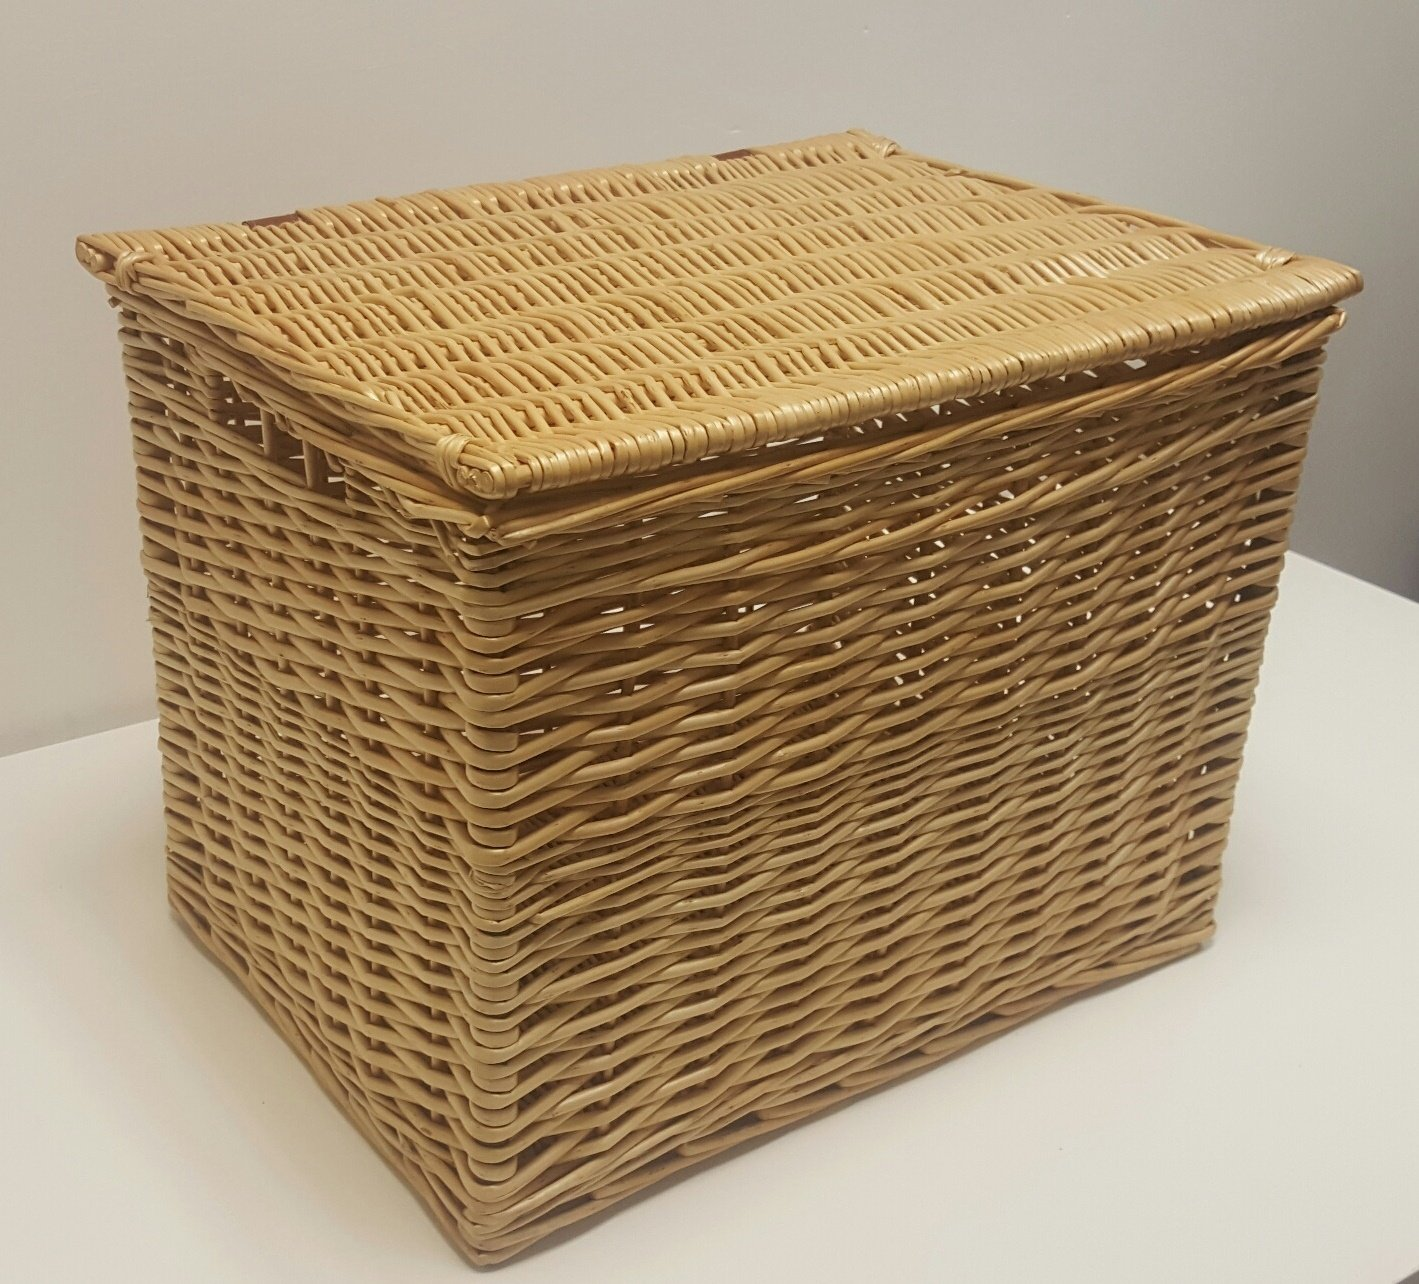 Buff Willow Wicker Deep Storage Chests/Lids / Baskets/Trunk / Hamper (X-Small: L31 cm x W21 cm x H30 cm) Choice Baskets